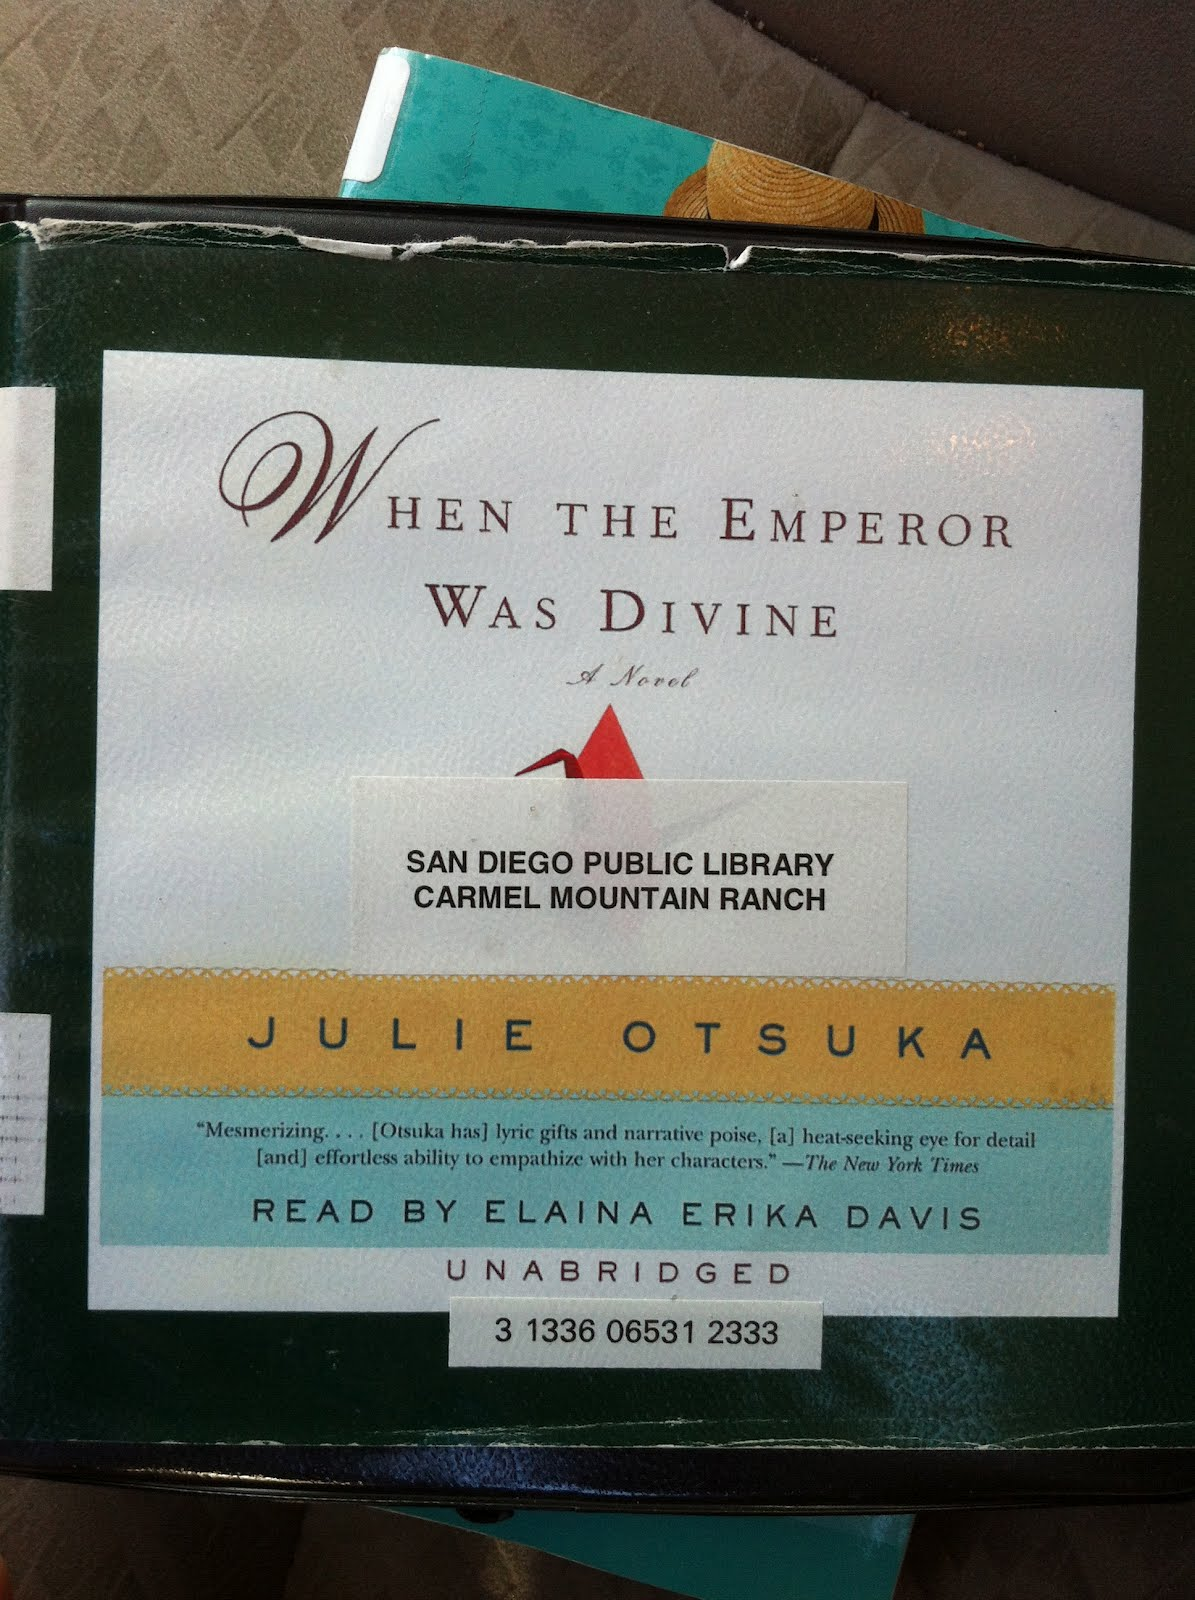 the struggle of a japanese american family in the novel when the emperor was divine by julie otsuka The novel when the emperor was divine tells the story of a japanese-american family separated and incarcerated after the outbreak of world war ii the novel begins in berkeley, california in the days leading up to the forced relocation and follows the family until their return after the war the.